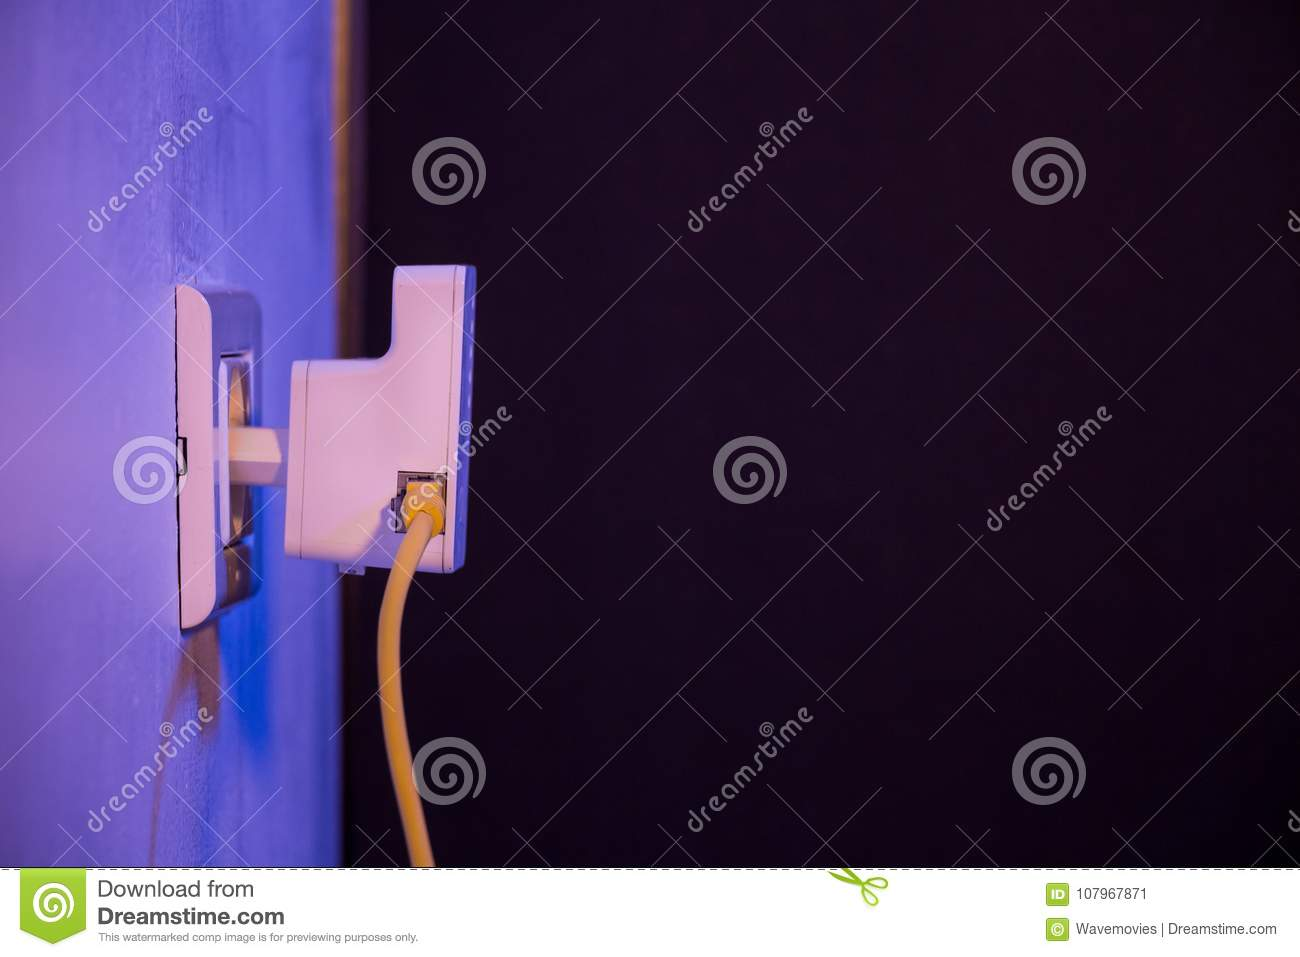 WiFi Extender In Electrical Socket On The Wall With Ethernet